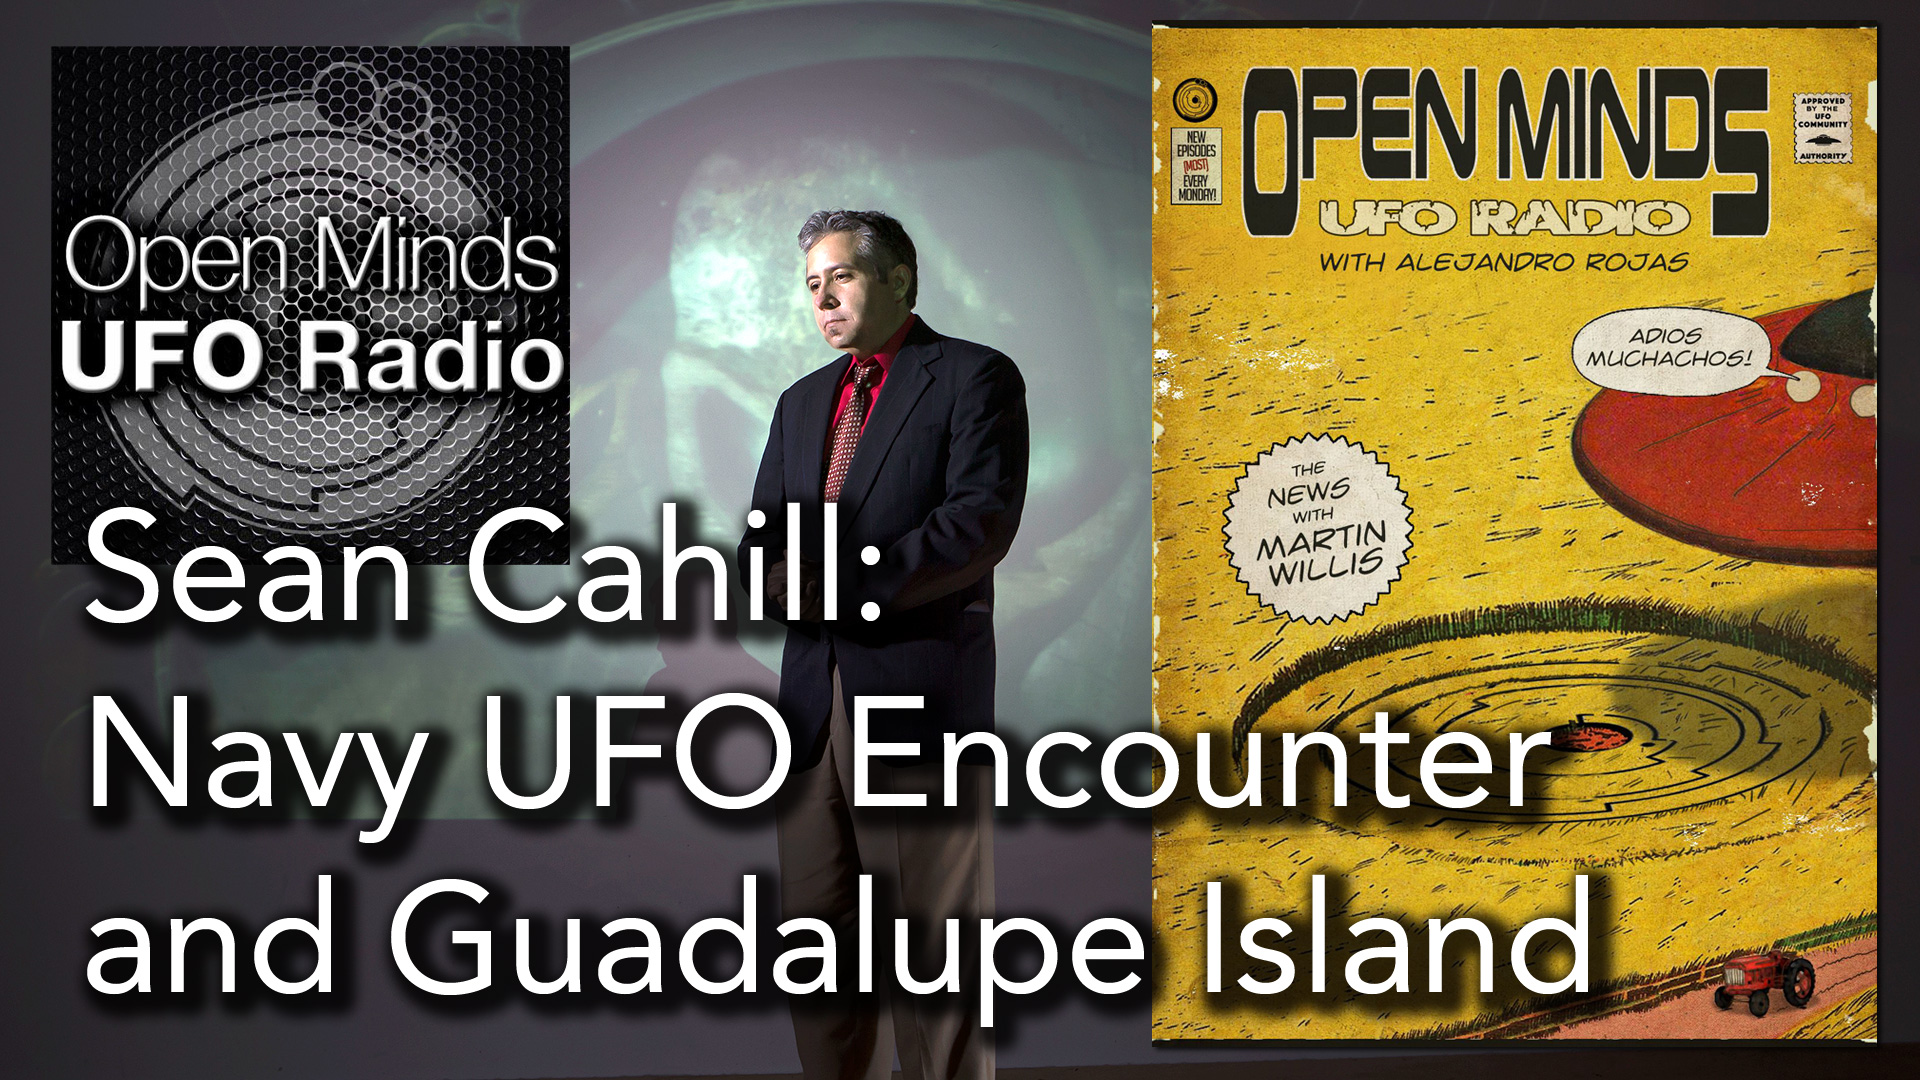 Sean Cahill On His Navy UFO Encounter and Guadalupe Island Investigation On Open minds UFO Radio